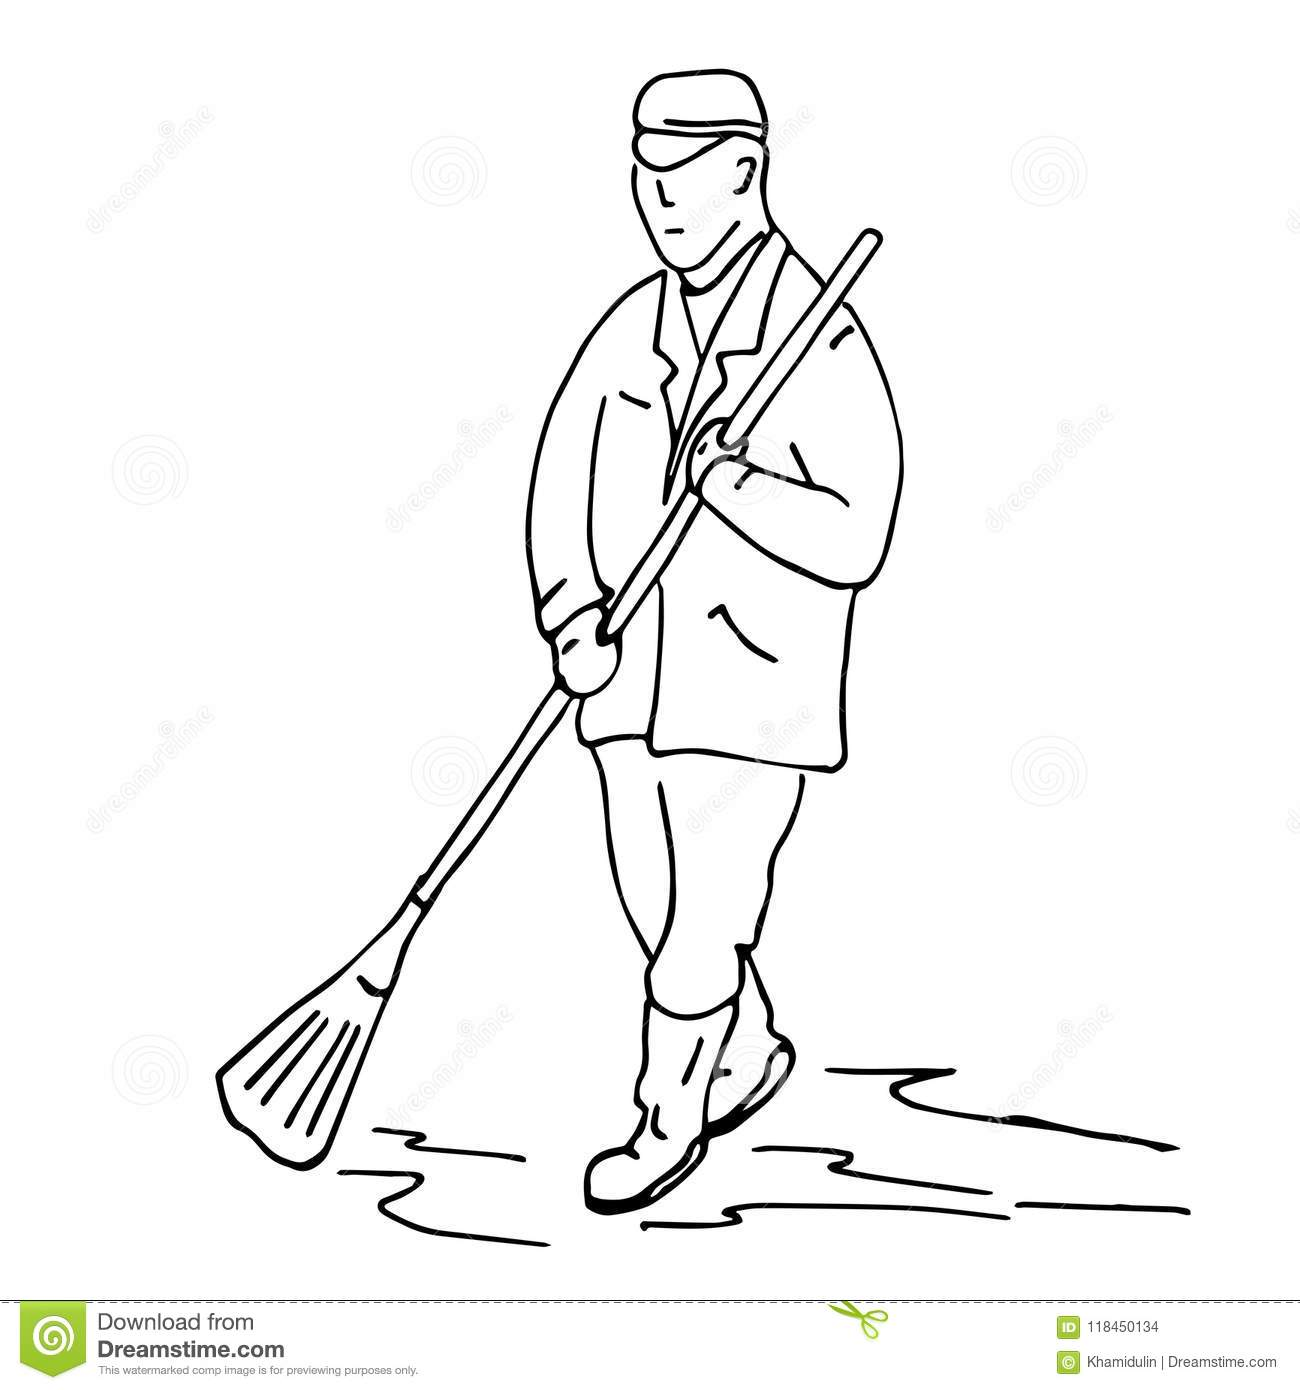 A Simple Sketch Of A Janitor Of A Street That Hits The